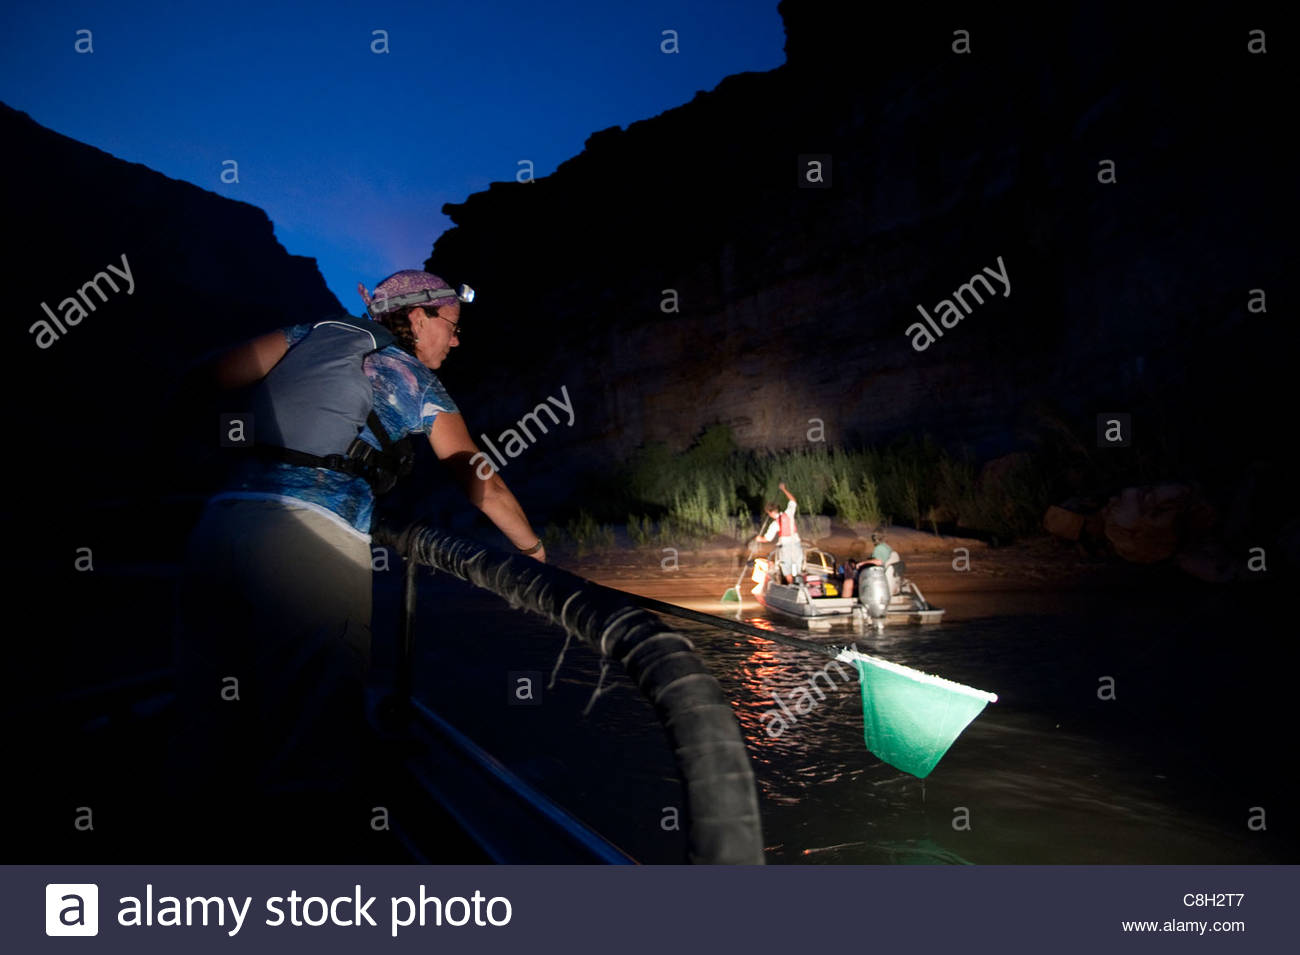 USGS scientists seek stunned humpback chub at night on the Colorado. - Stock Image